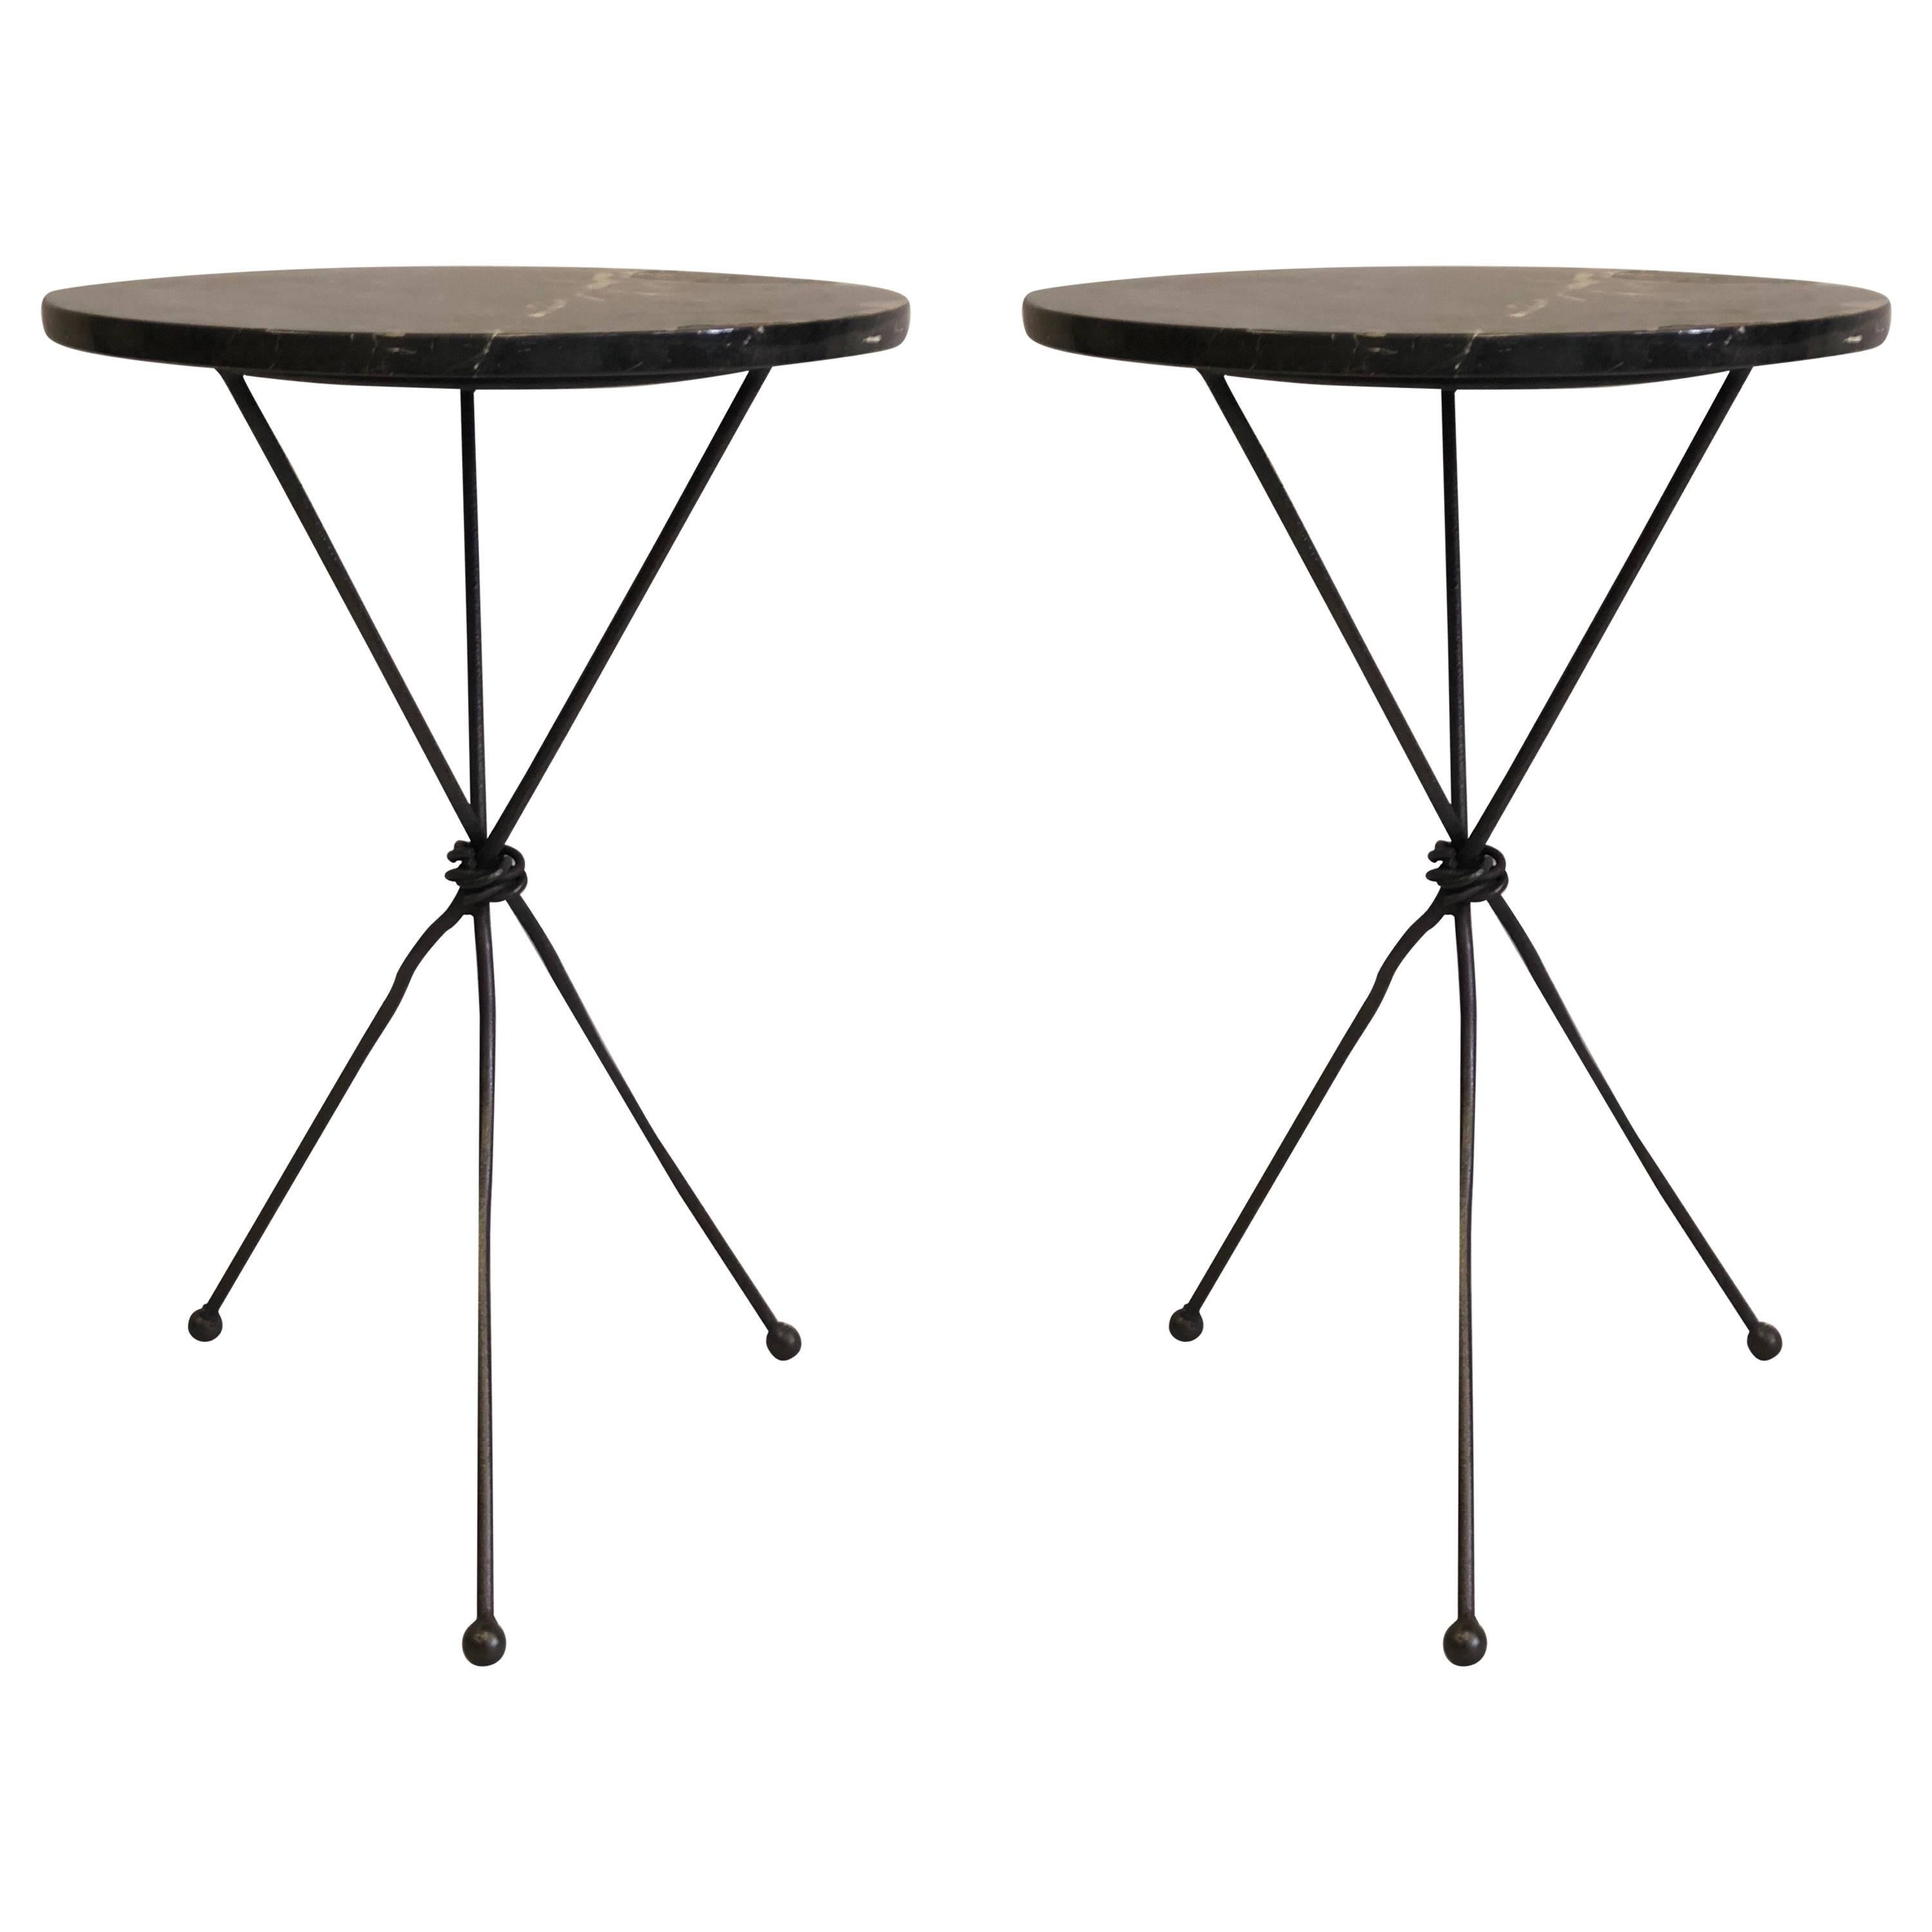 Pair Of French Wrought Iron Side Table Giacometti For Jean Michel Frank For  Sale At 1stdibs